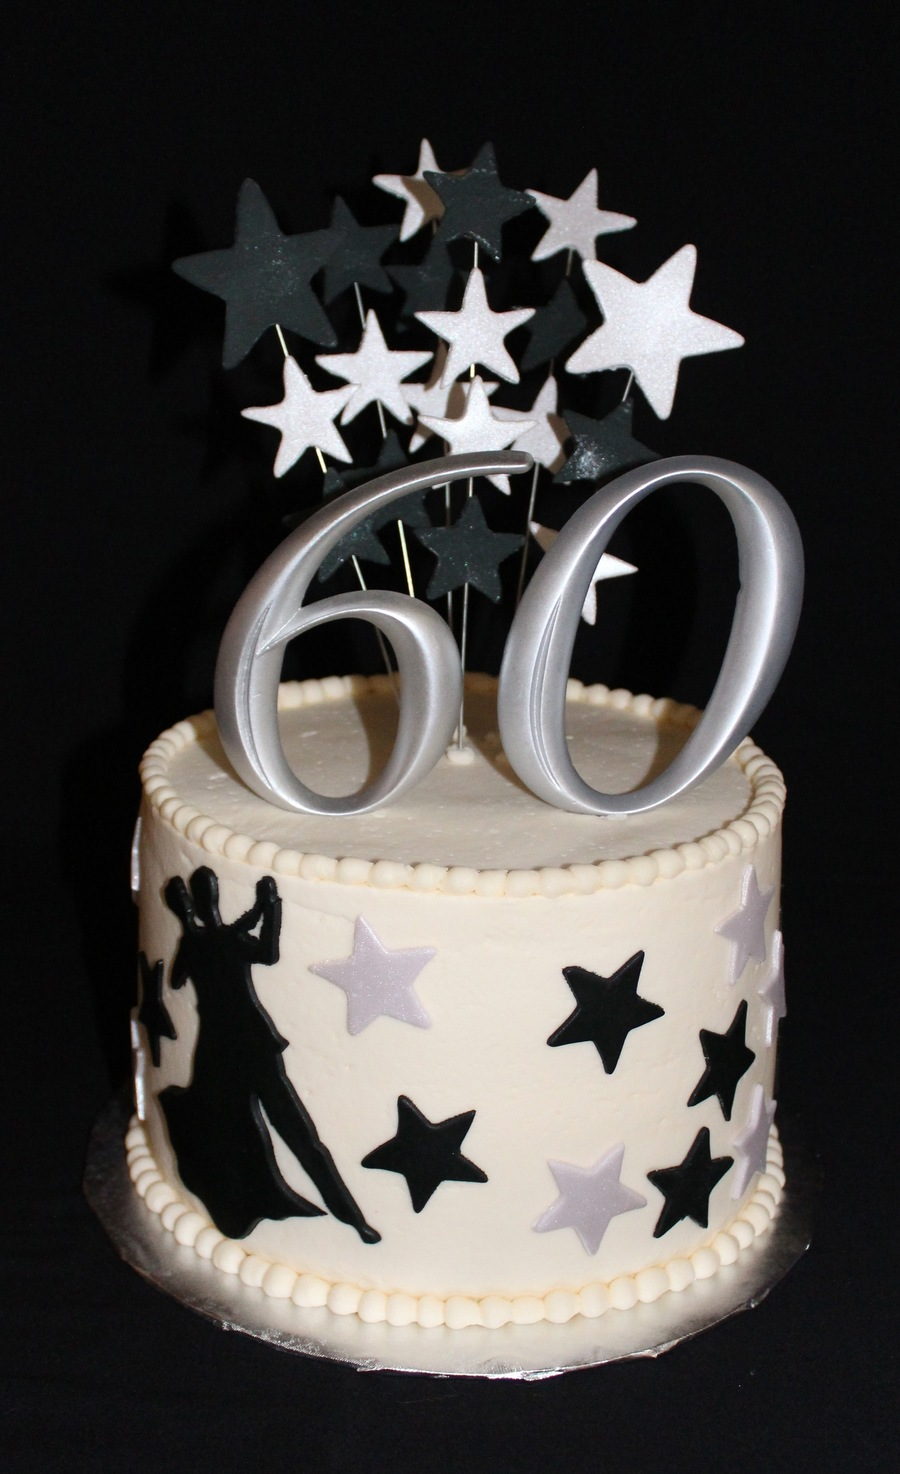 60th birthday cake lemon cake with lemon curd filling and for 60th birthday cake decoration